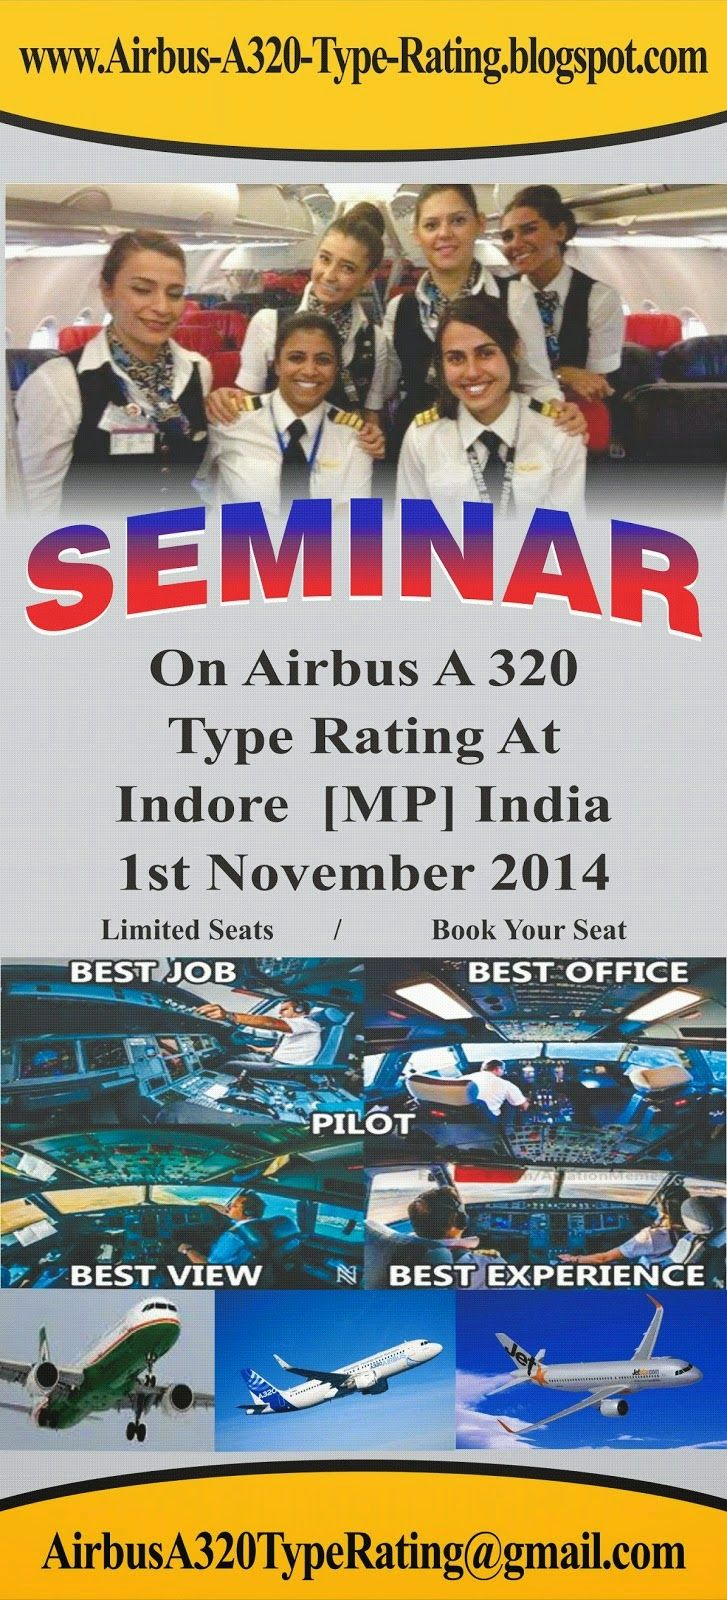 International Airlines Pilot Training Admission Op: Full Motion Airbus A320 Simulator